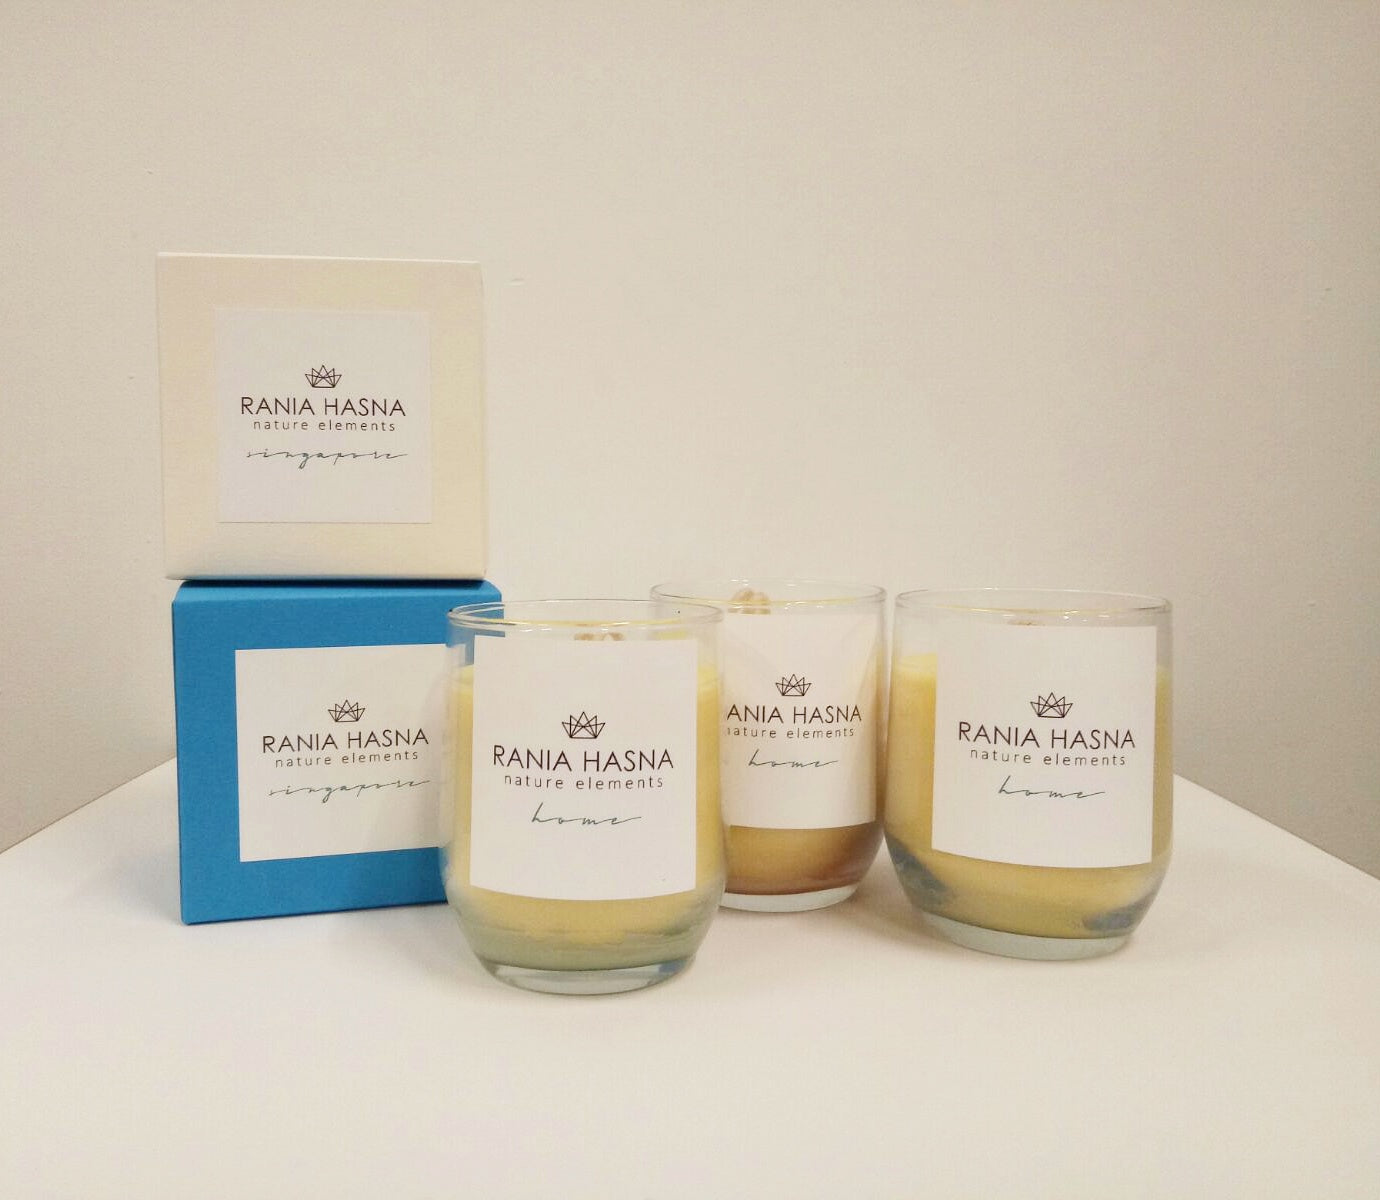 Coconut & Beeswax Candles - Rania Hasna Nature Elements